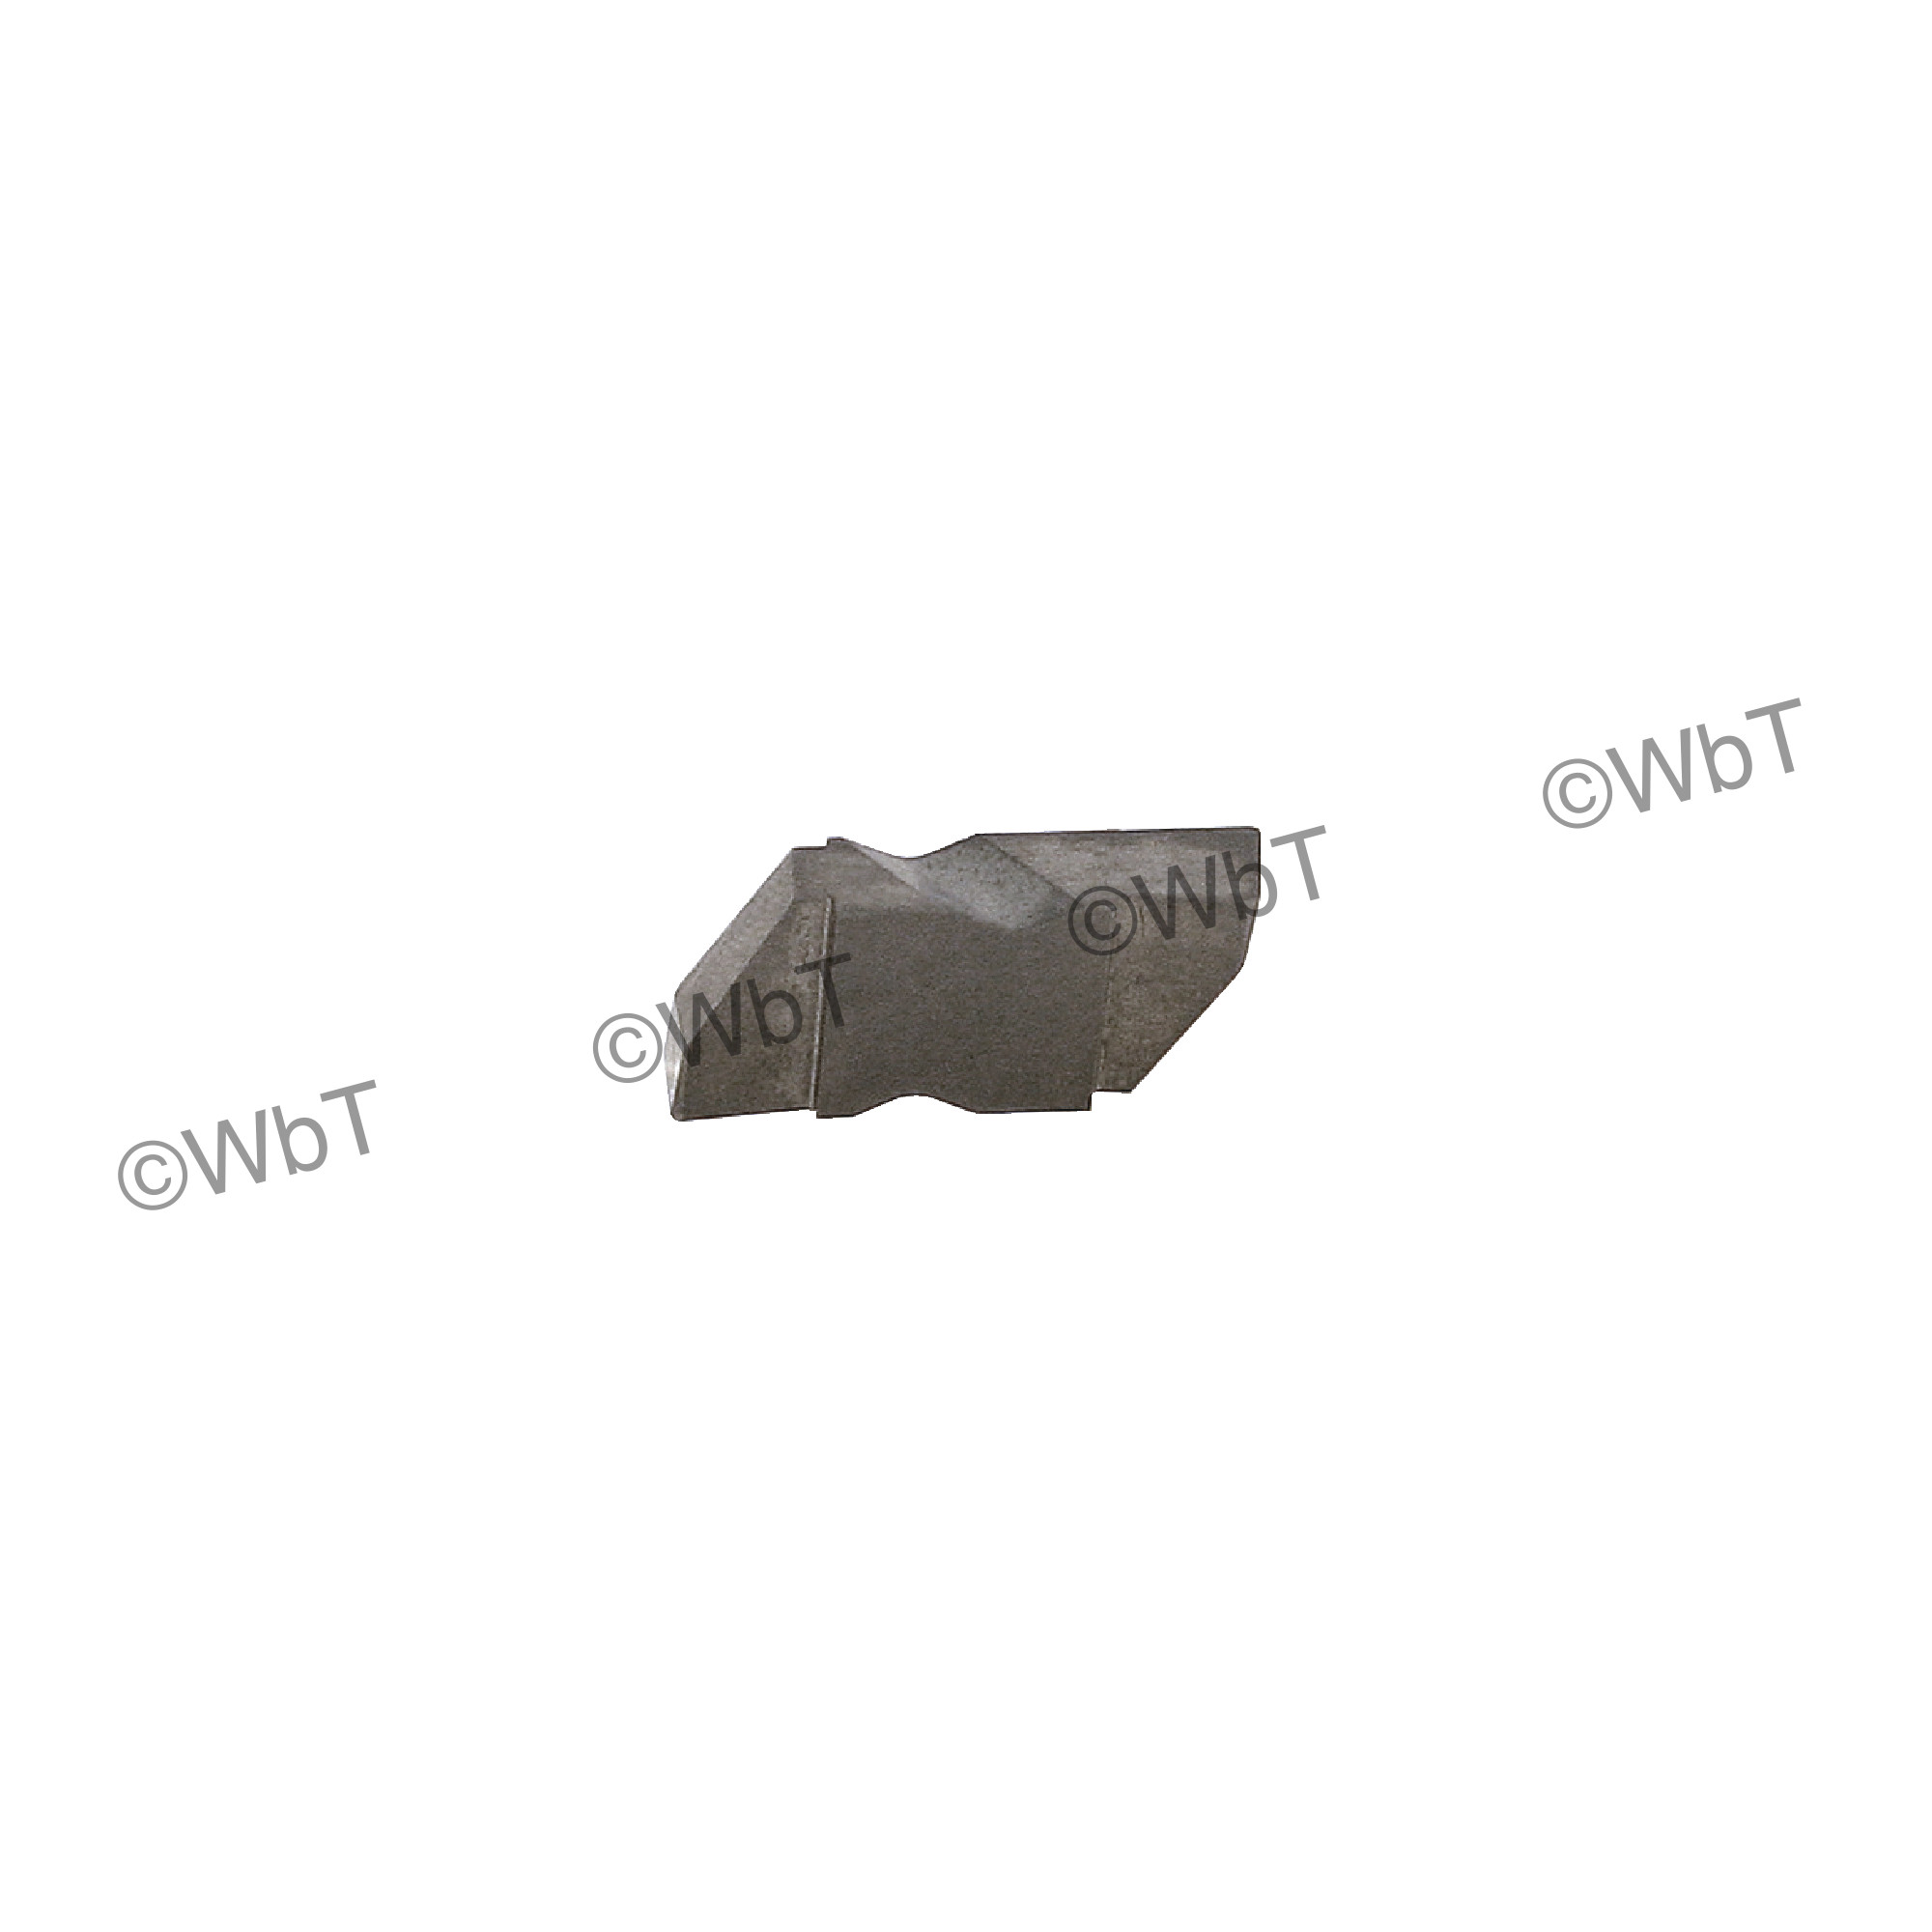 """TERRA CARBIDE - TNG 2031L APC2 / Top Clamp Indexable Carbide Insert / 0.031"""" Cutting Width / Left Hand"""